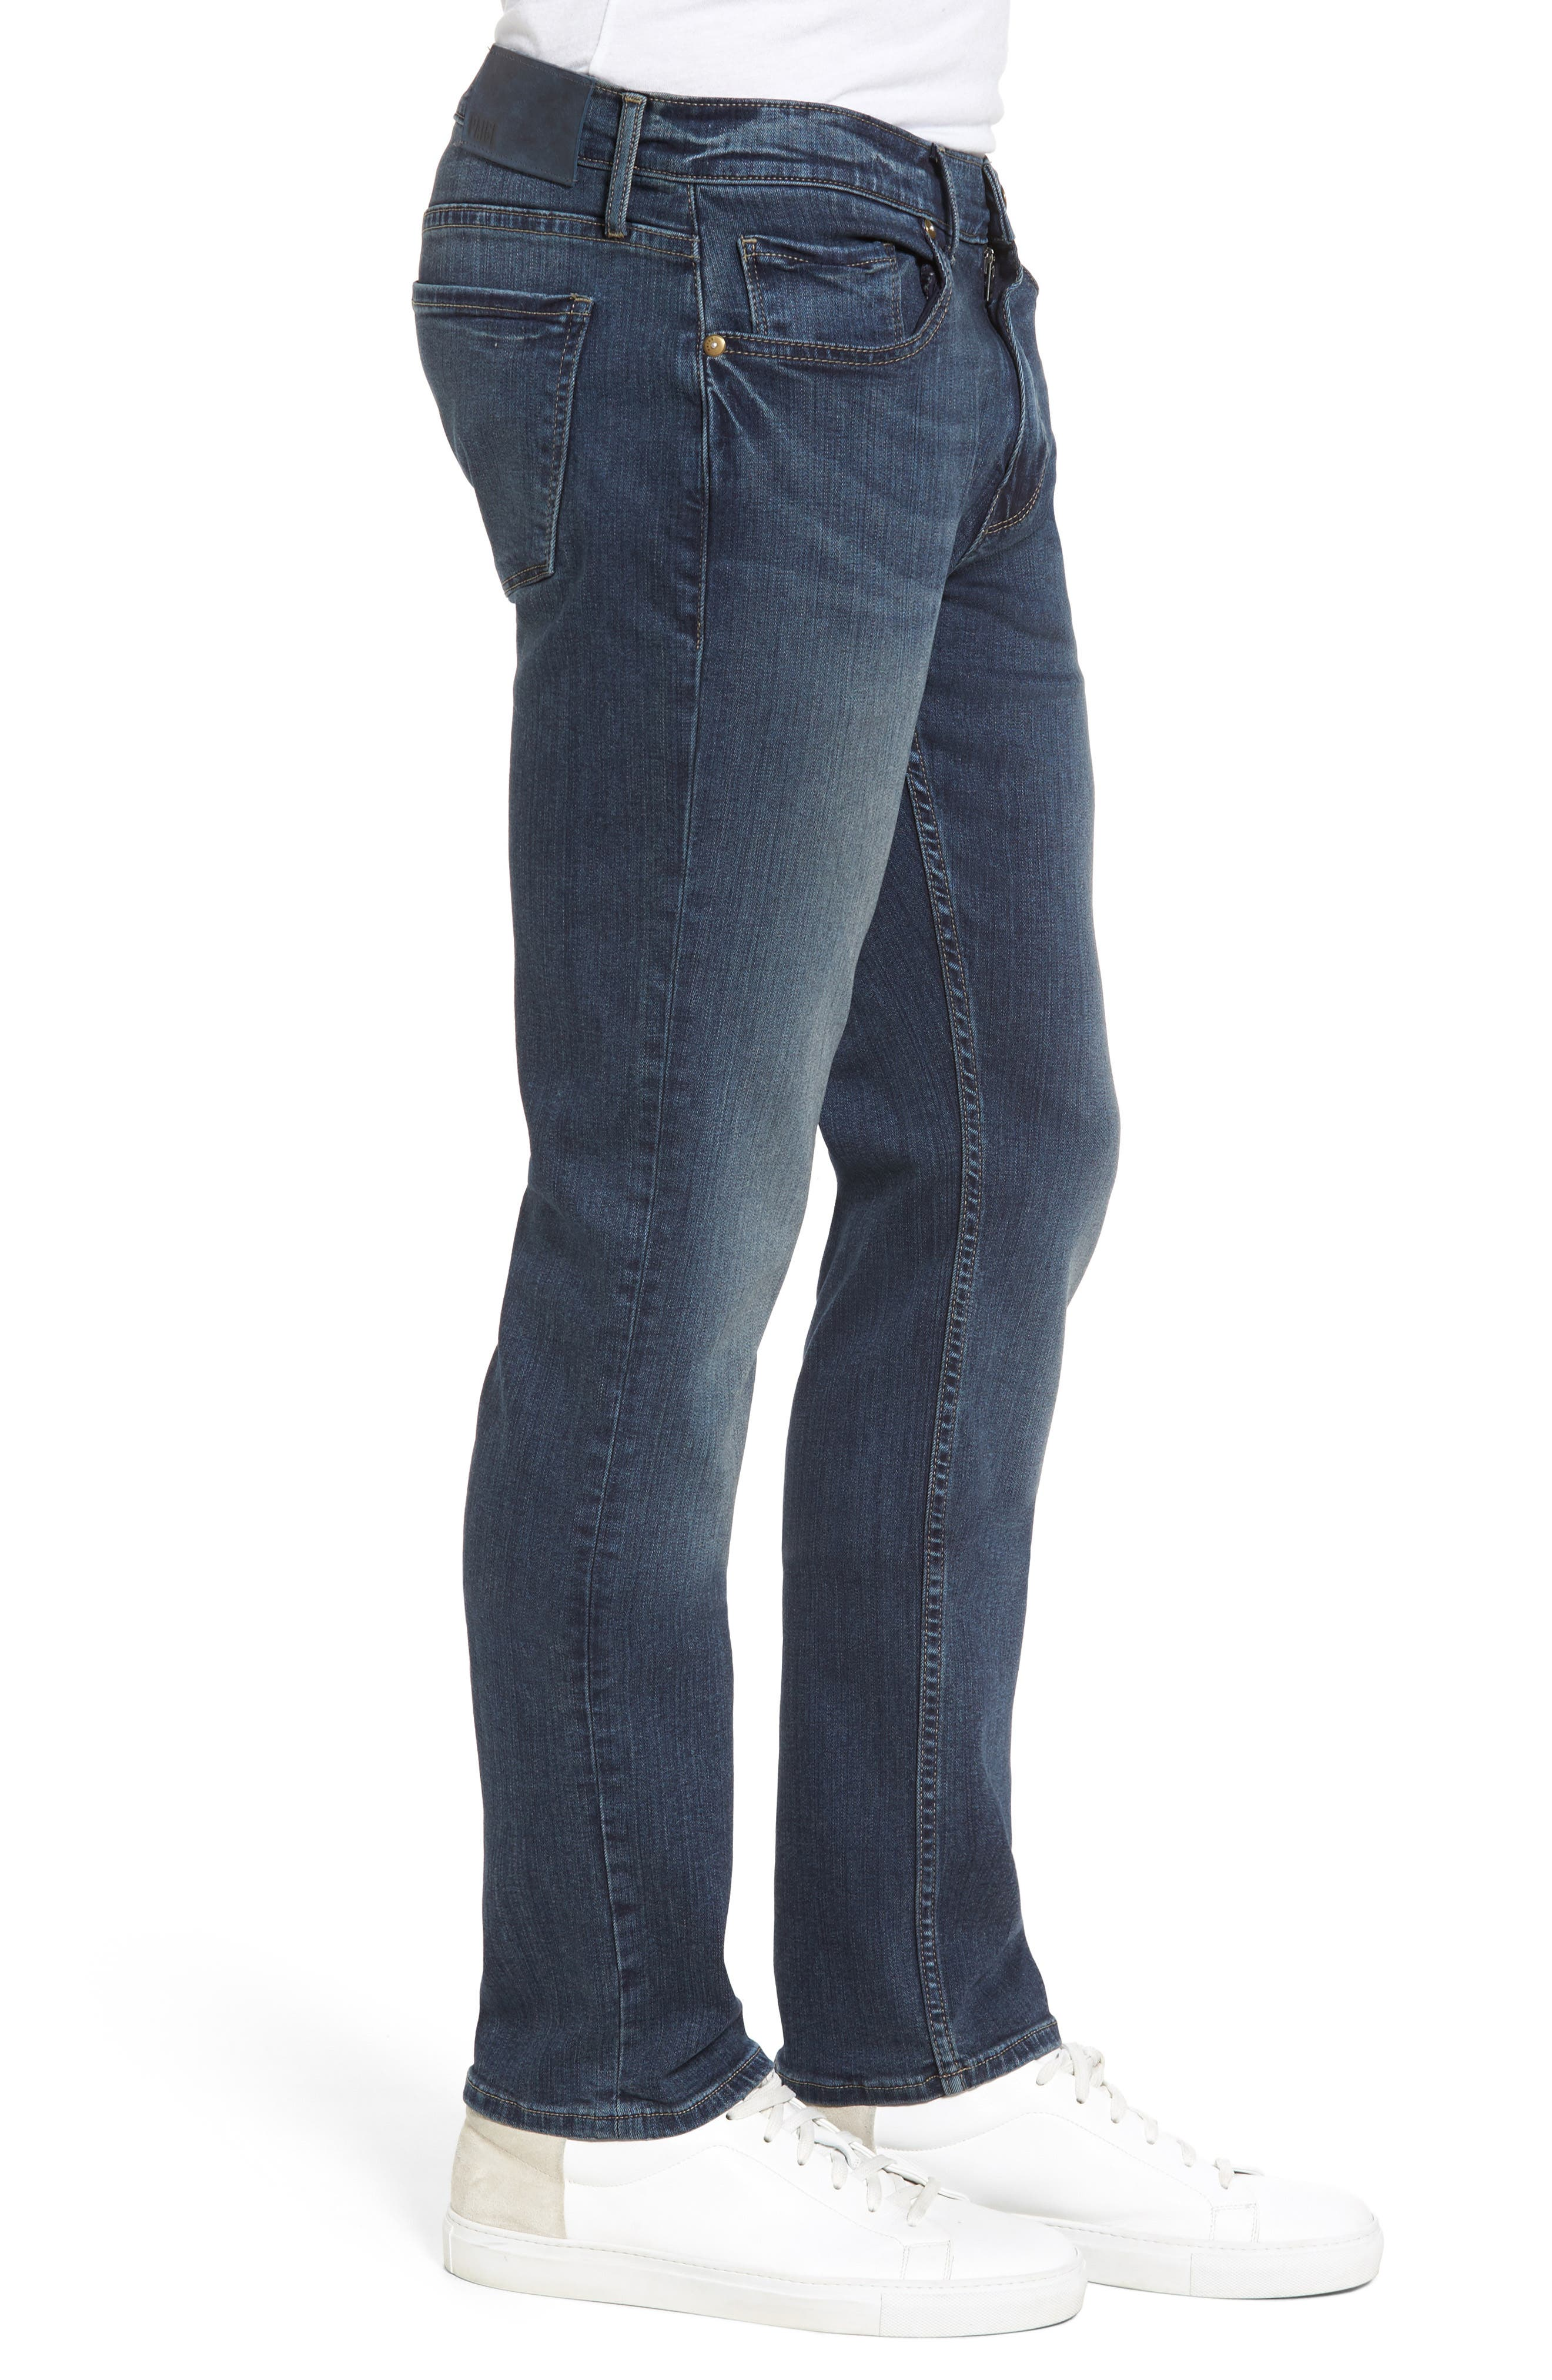 Transcend - Federal Slim Straight Leg Jeans,                             Alternate thumbnail 3, color,                             Briggs